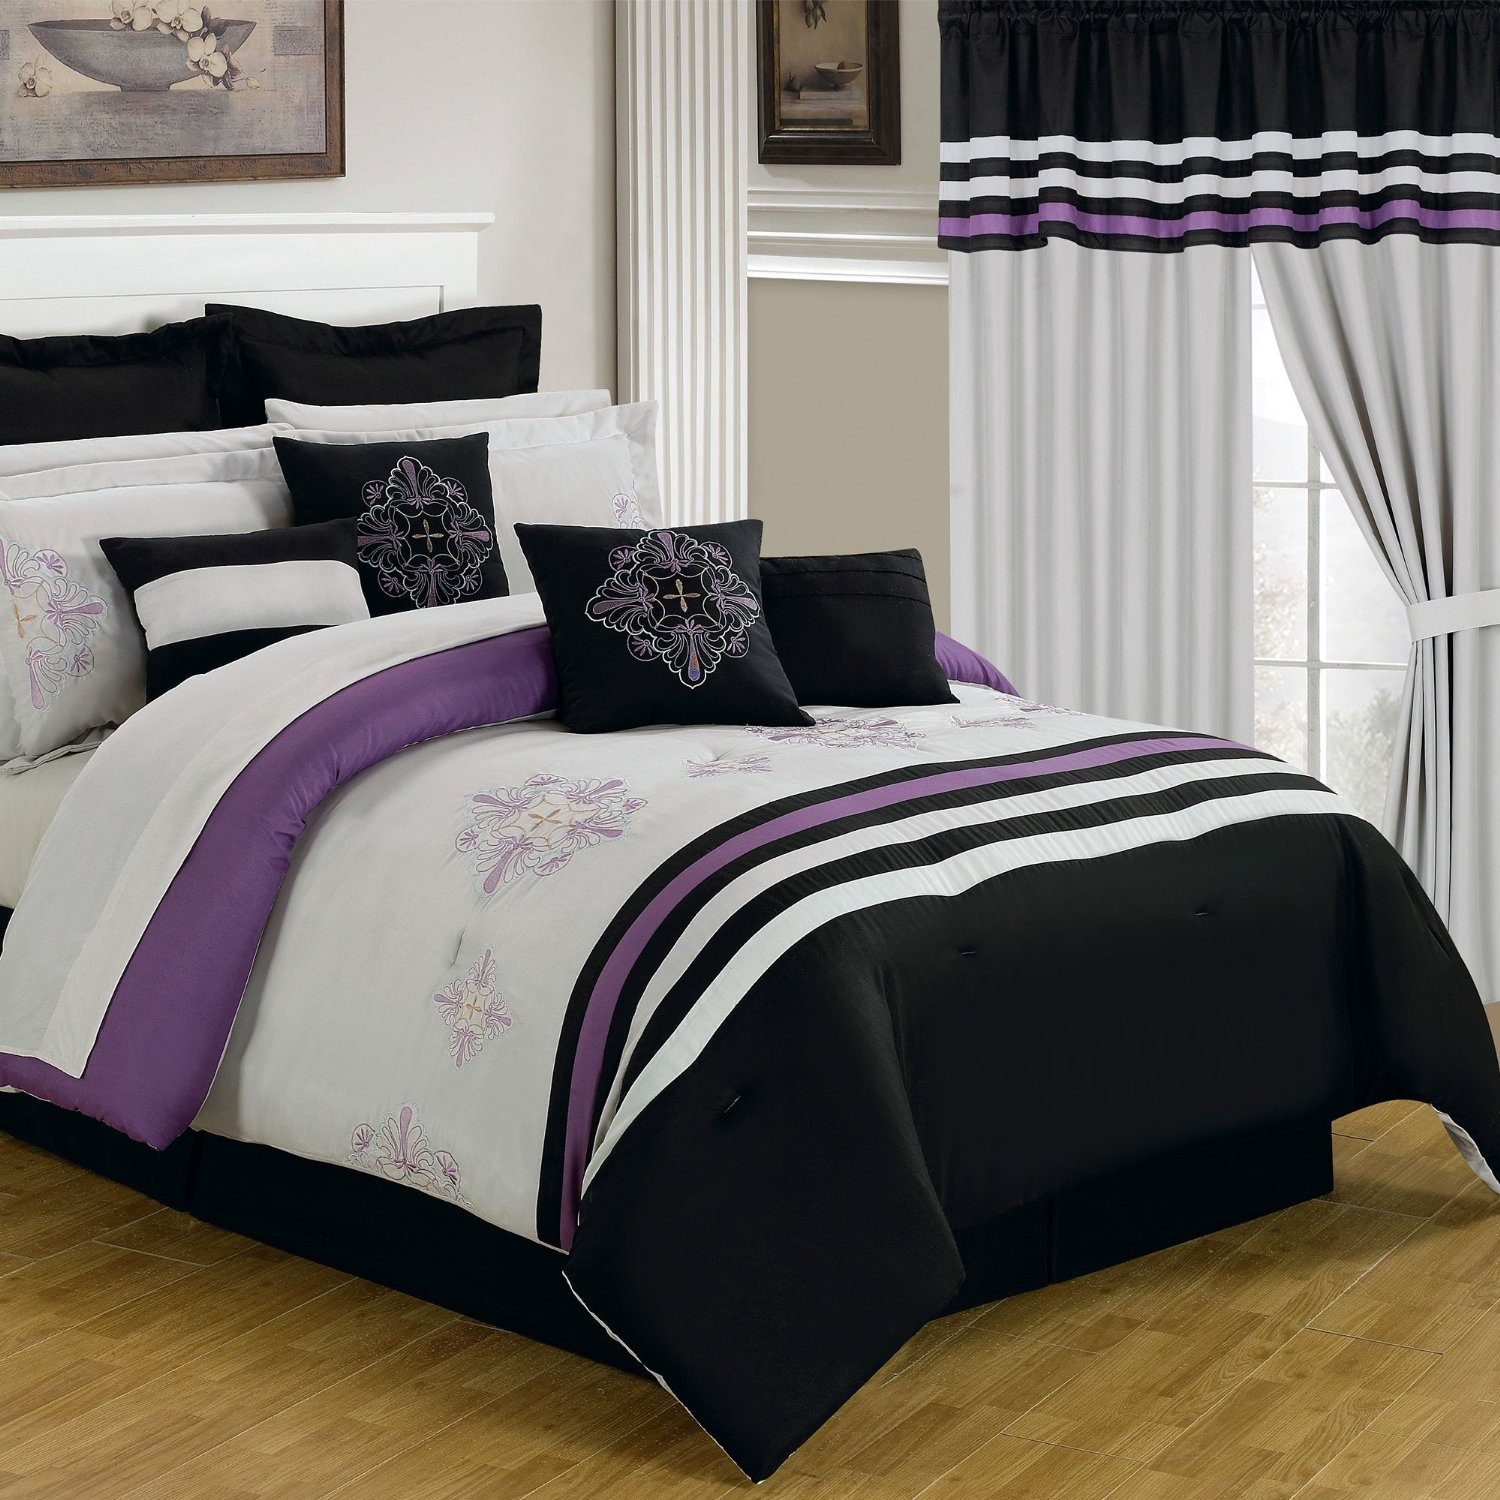 purple black and white bedding sets drama uplifted. Black Bedroom Furniture Sets. Home Design Ideas